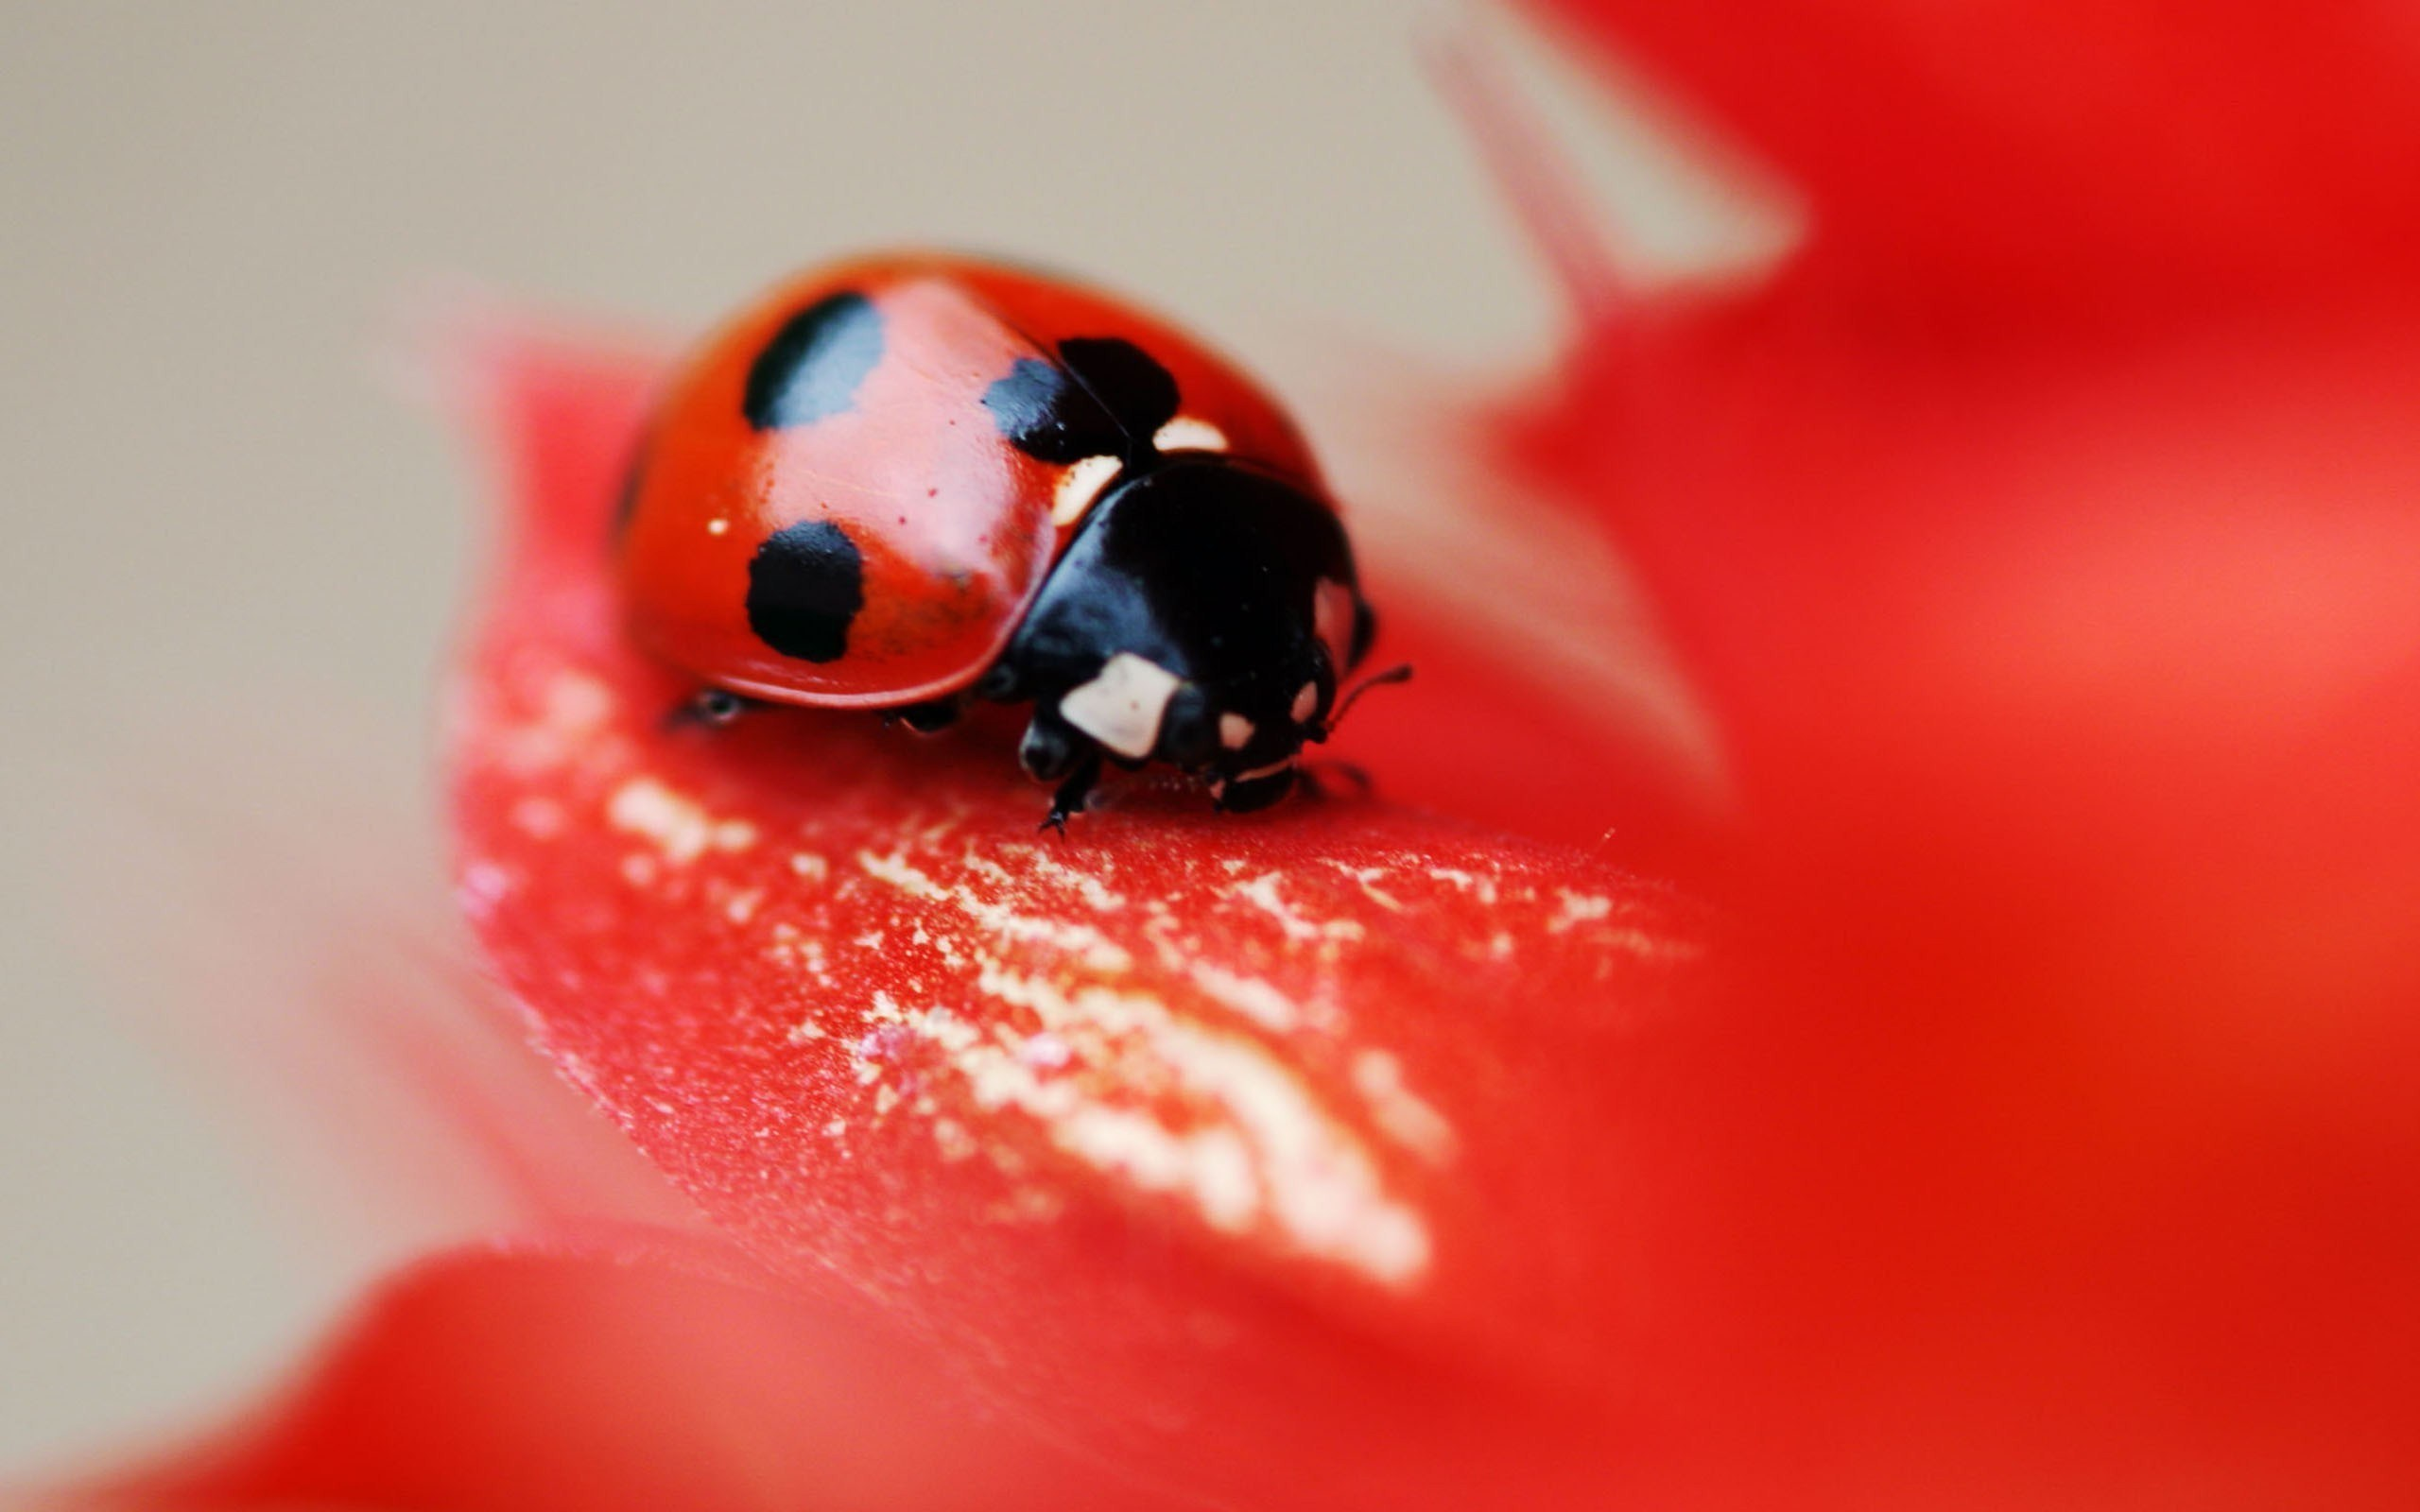 Ladybug Insect Flower Red Petals